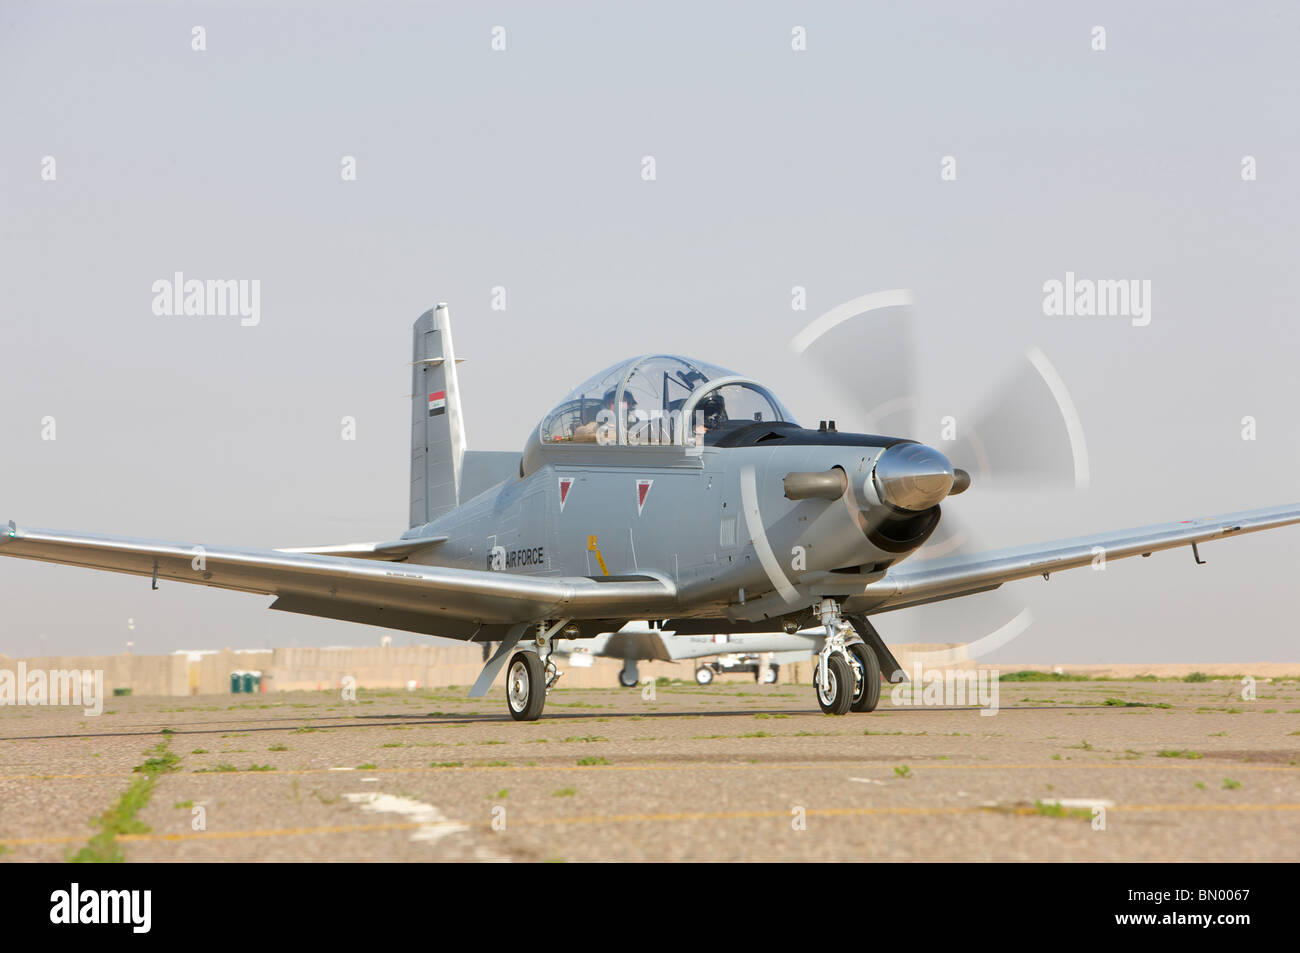 Pilots perform a pre-flight test on their T-6 Texan trainer aircraft. - Stock Image